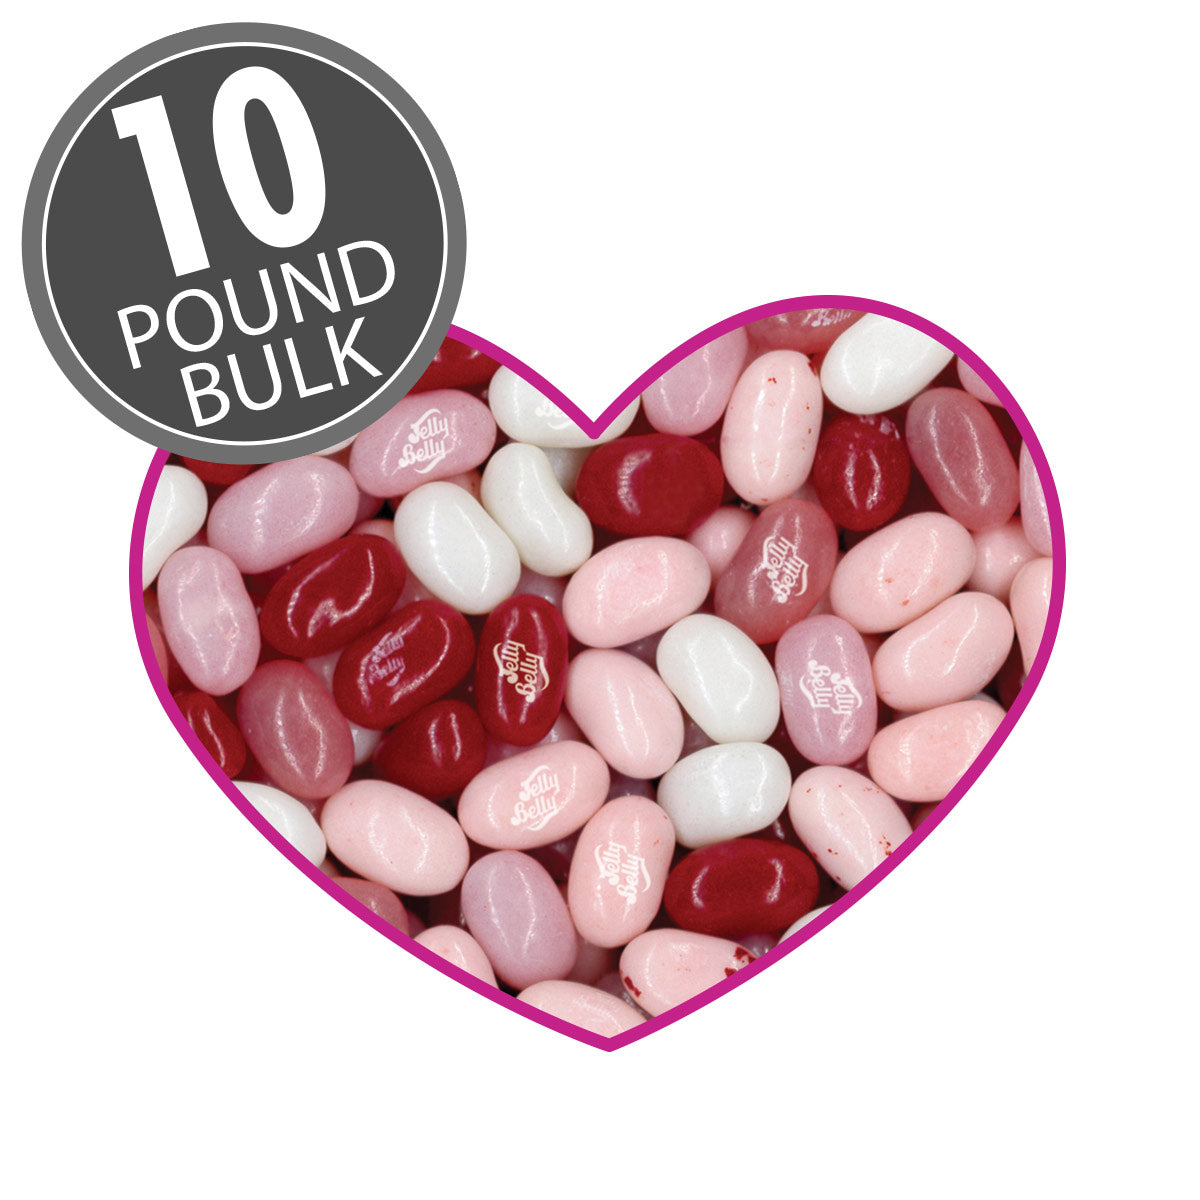 Jelly Belly Jelly Beans Valentine Mix 10lb